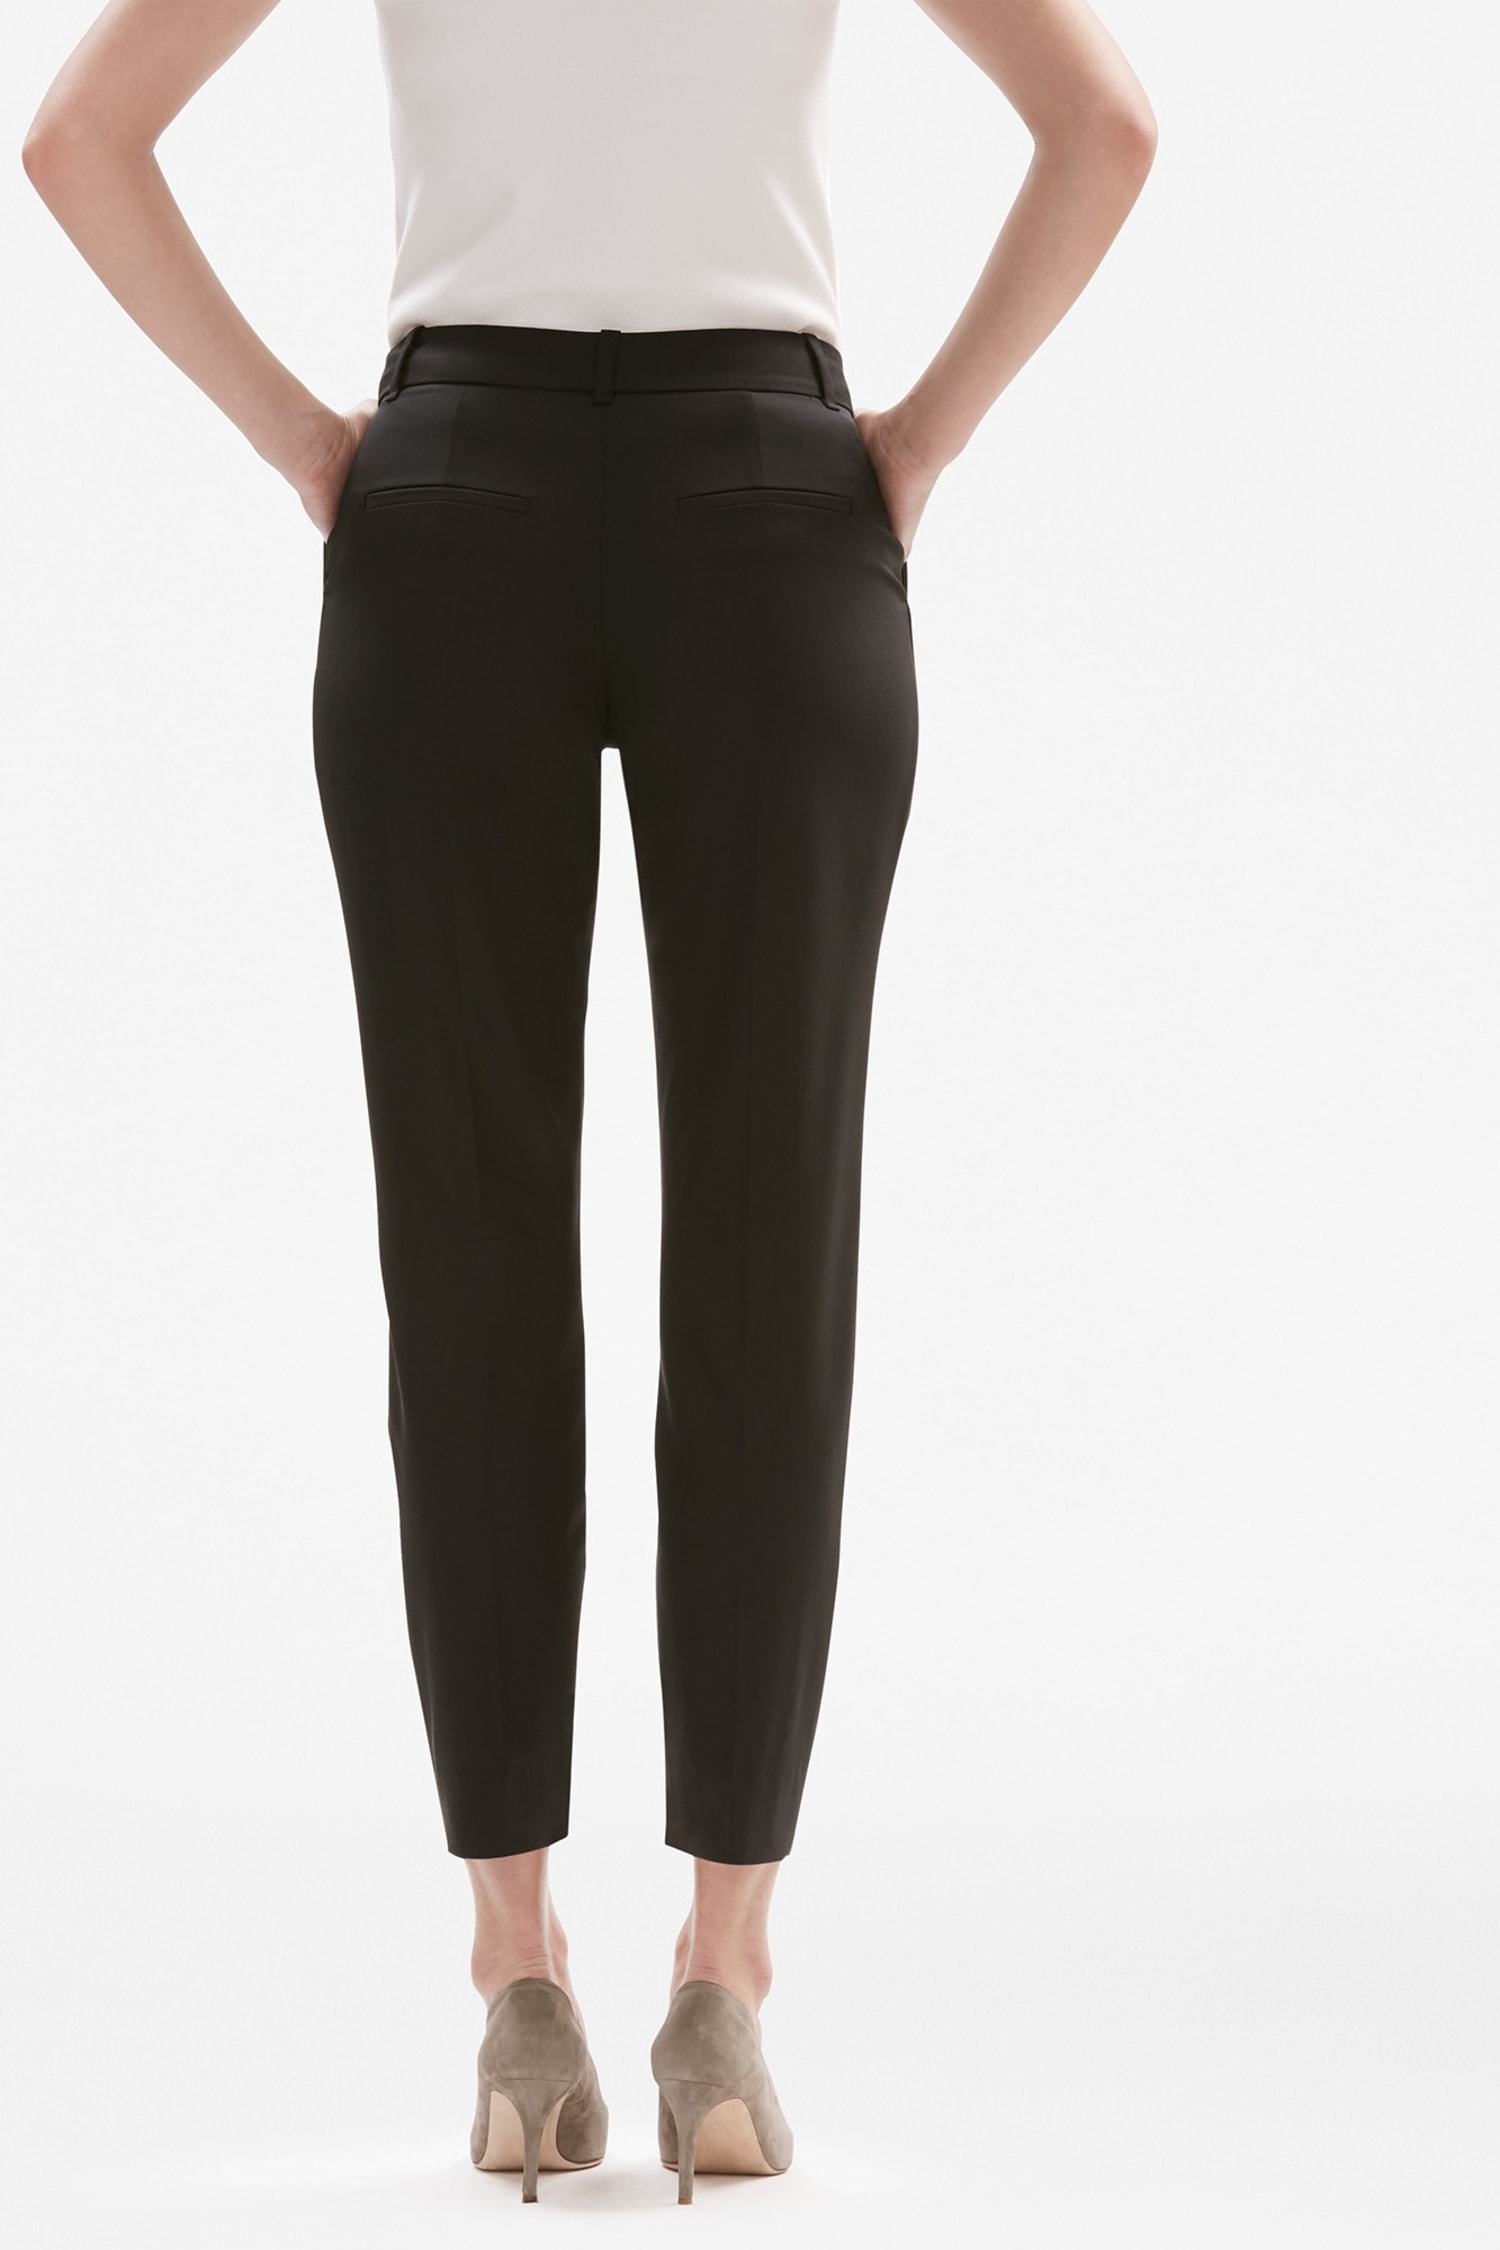 aa9146ead02de Back image of a woman standing wearing the Mejia pant in black